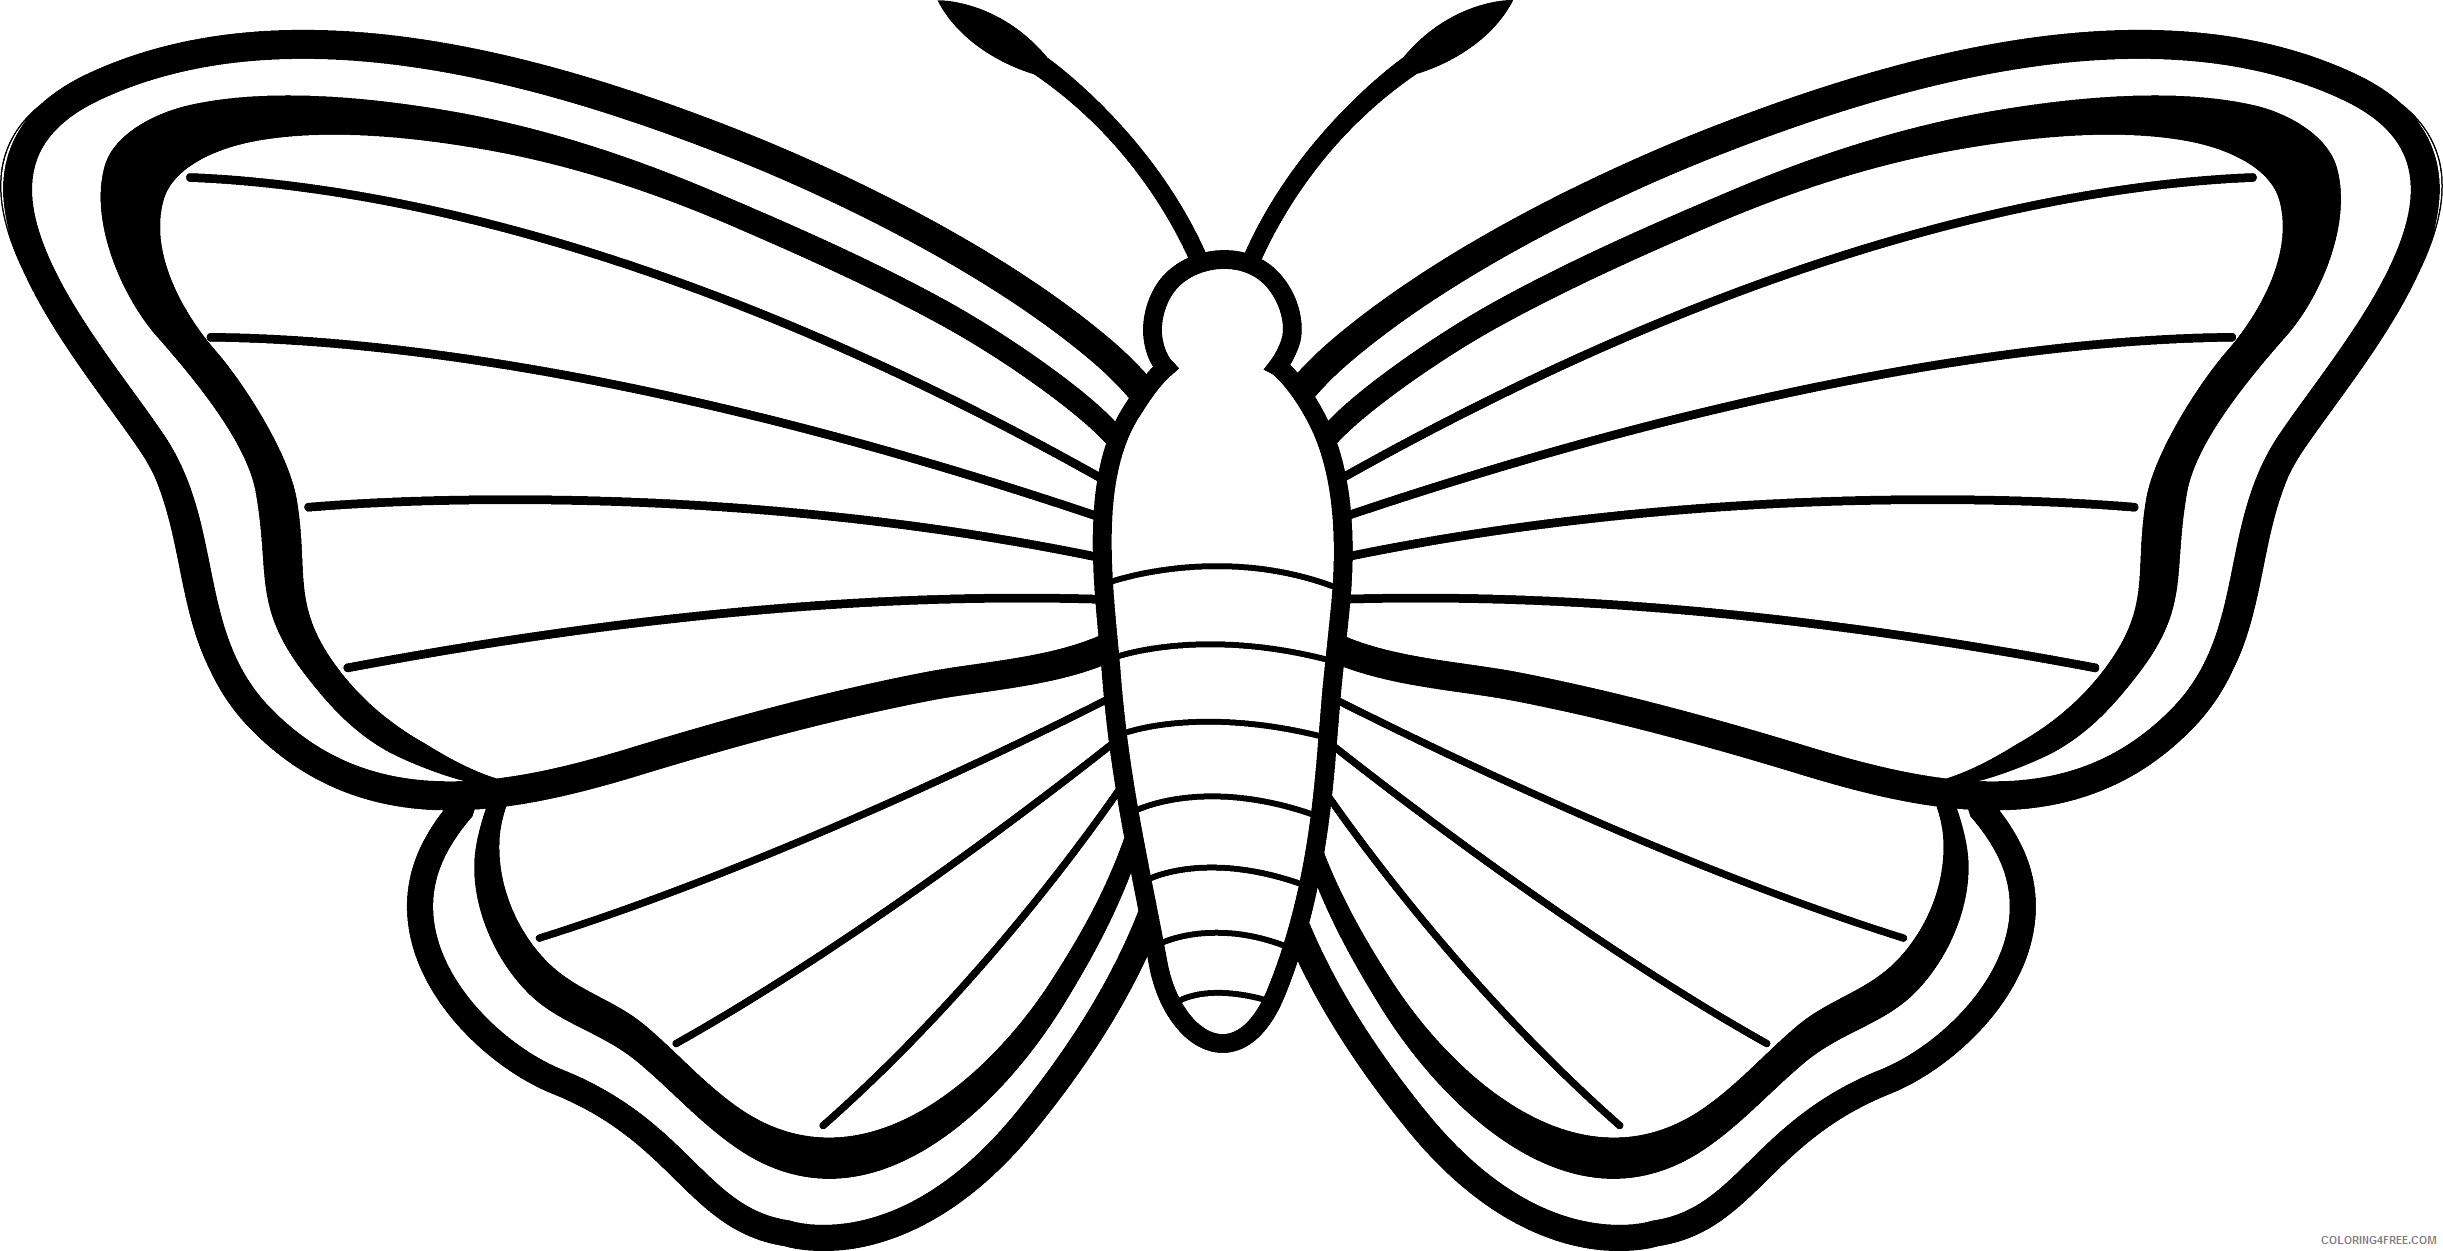 Butterfly Outline Coloring Pages butterfly outline free clipart Printable Coloring4free